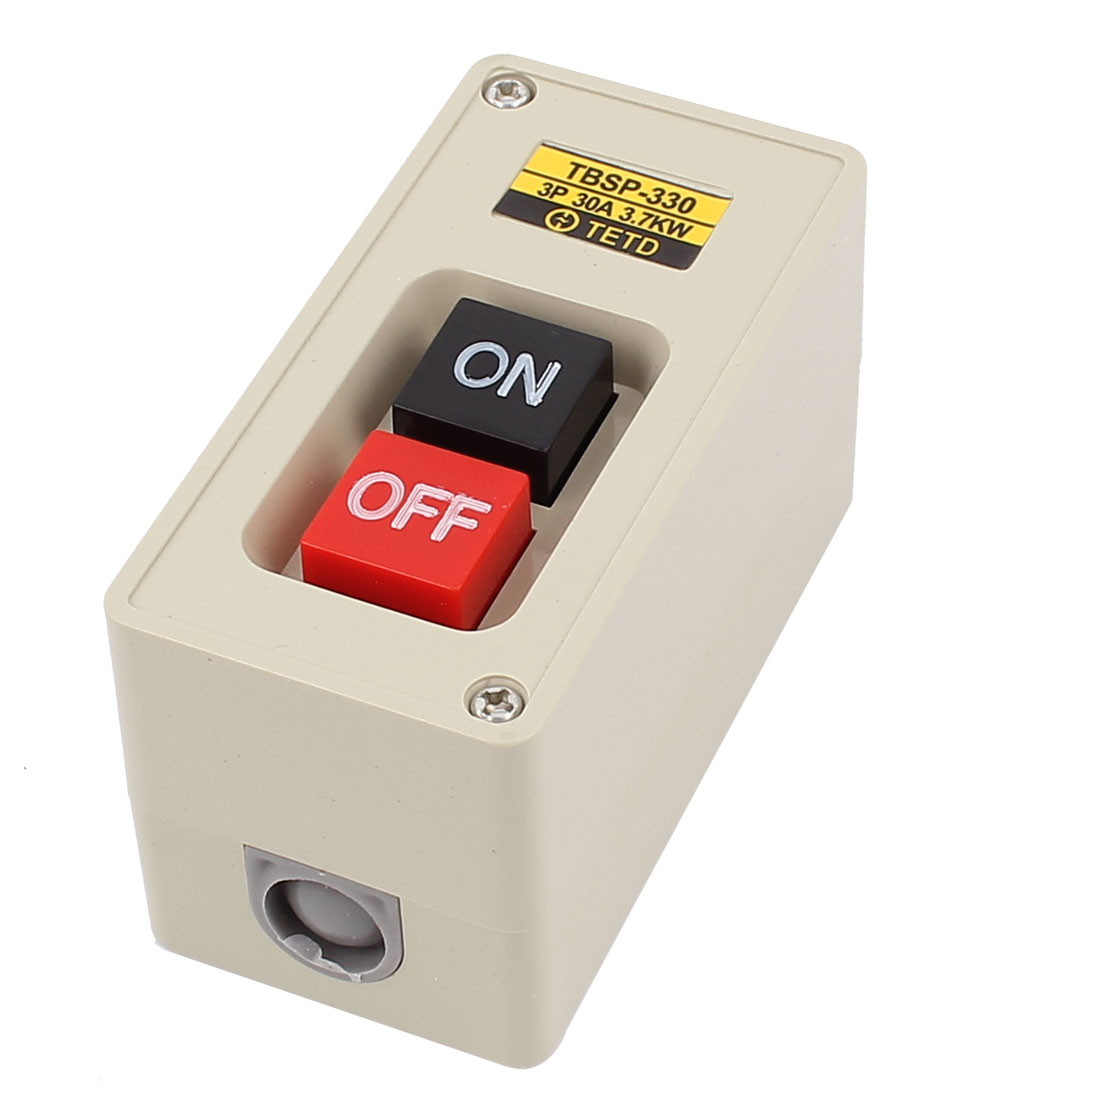 TBSP-330 ON/OFF 3P Latching Push Button Pushbutton Switch 3.7KW 30A